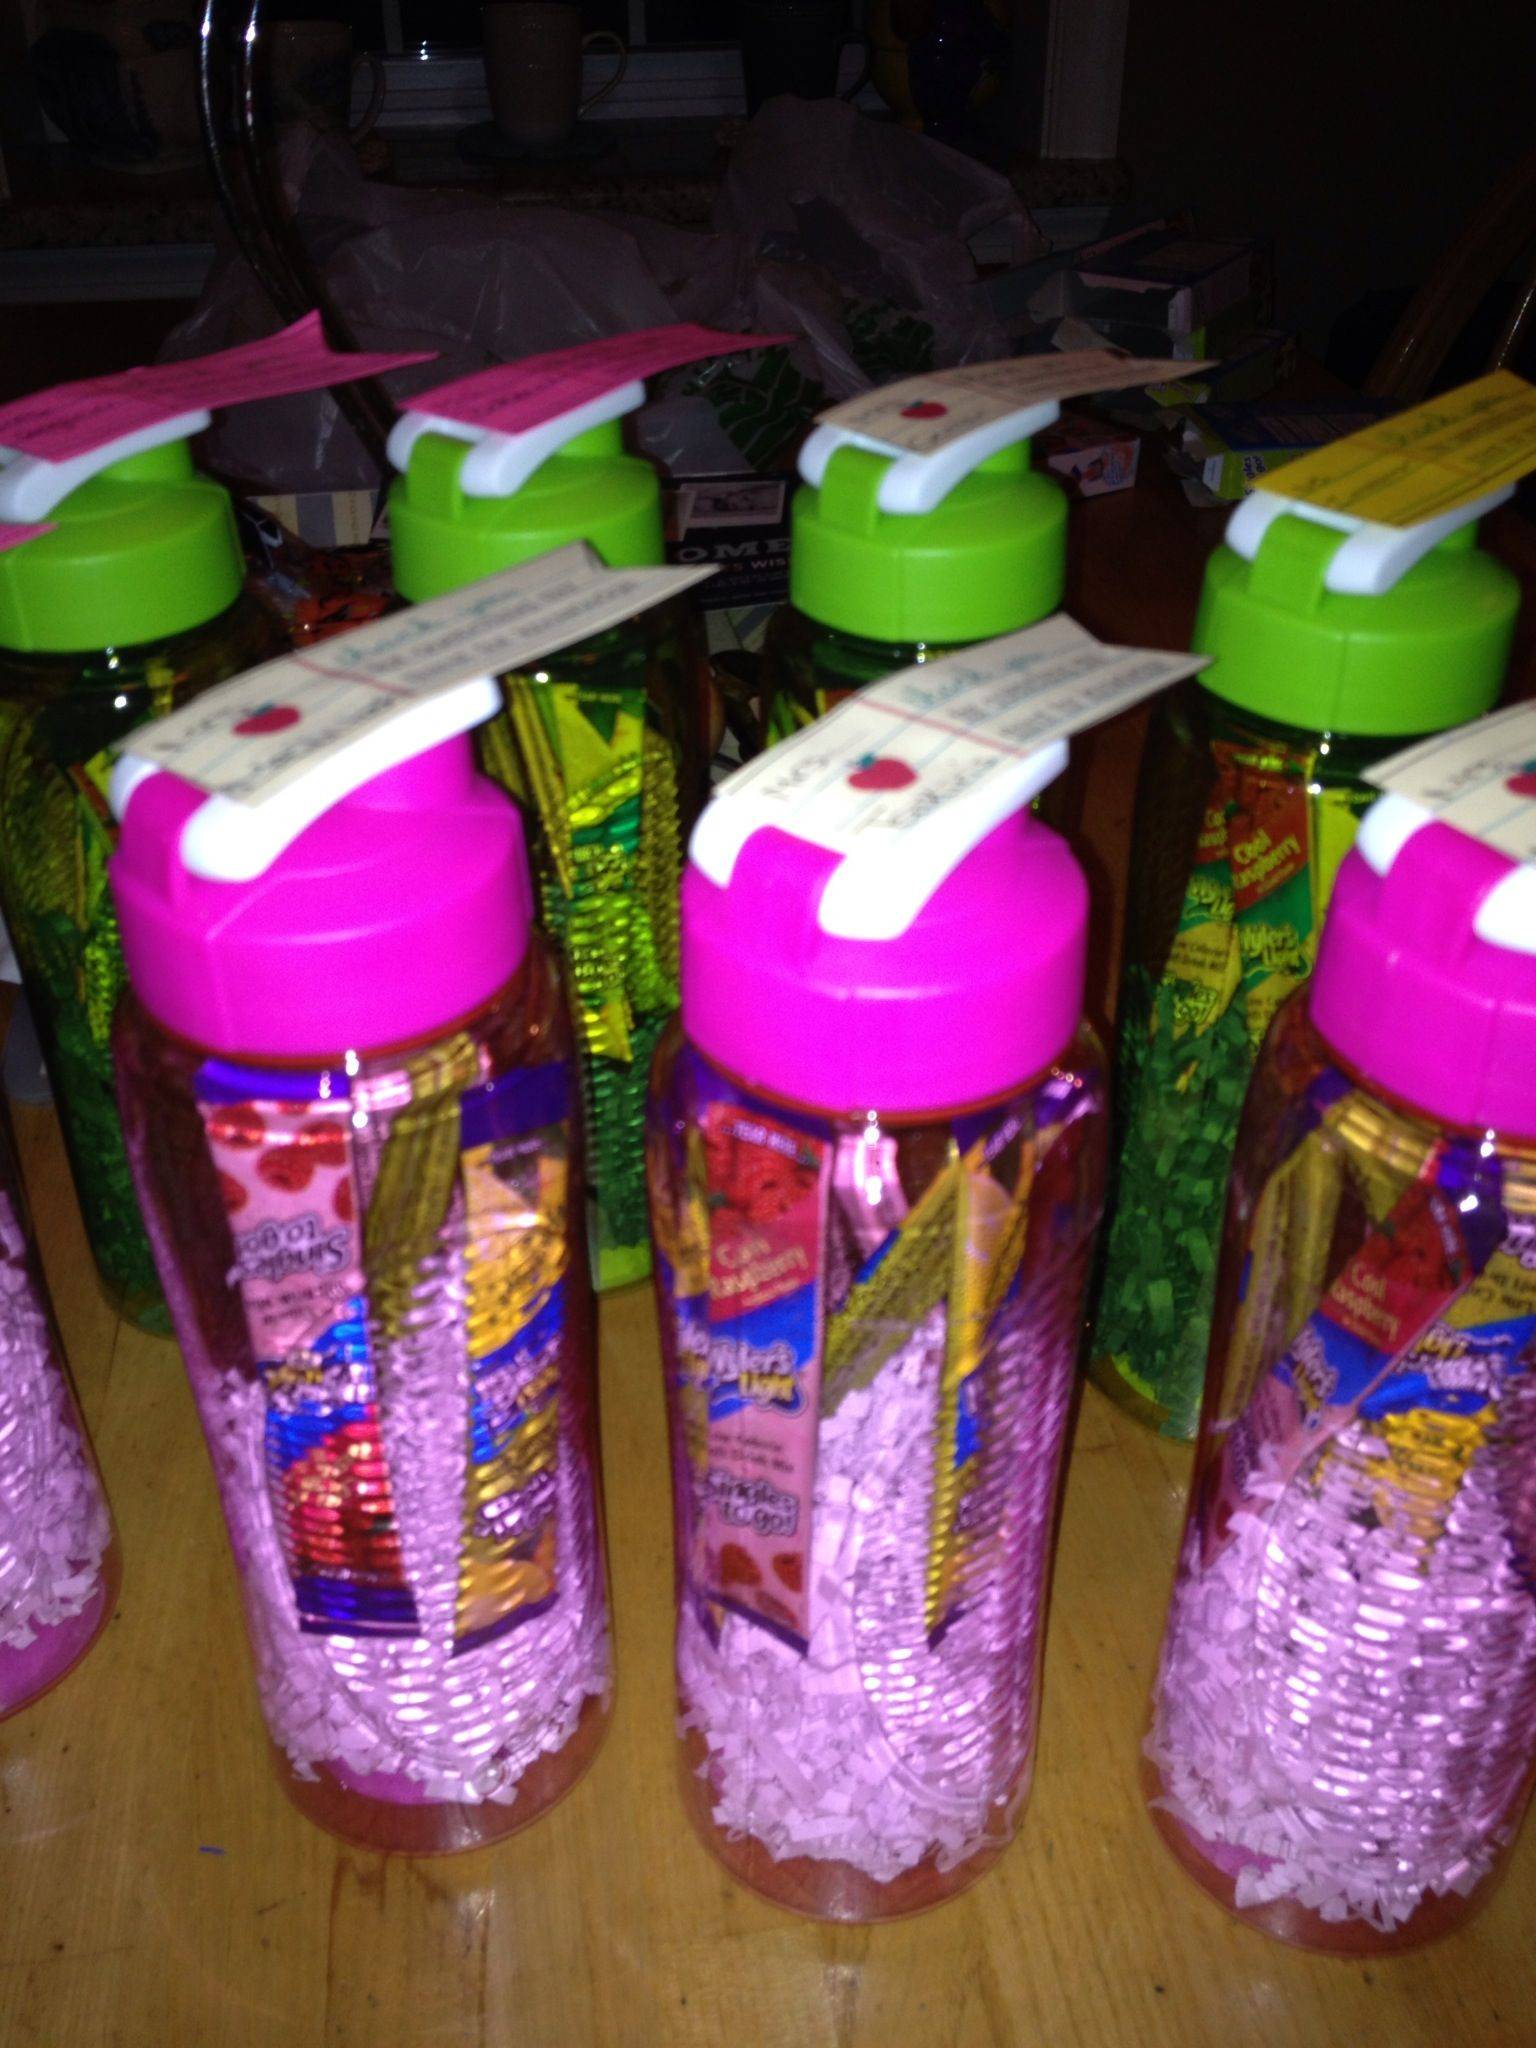 Dollar Store Water Bottles And Drink Mixes For An Easy And